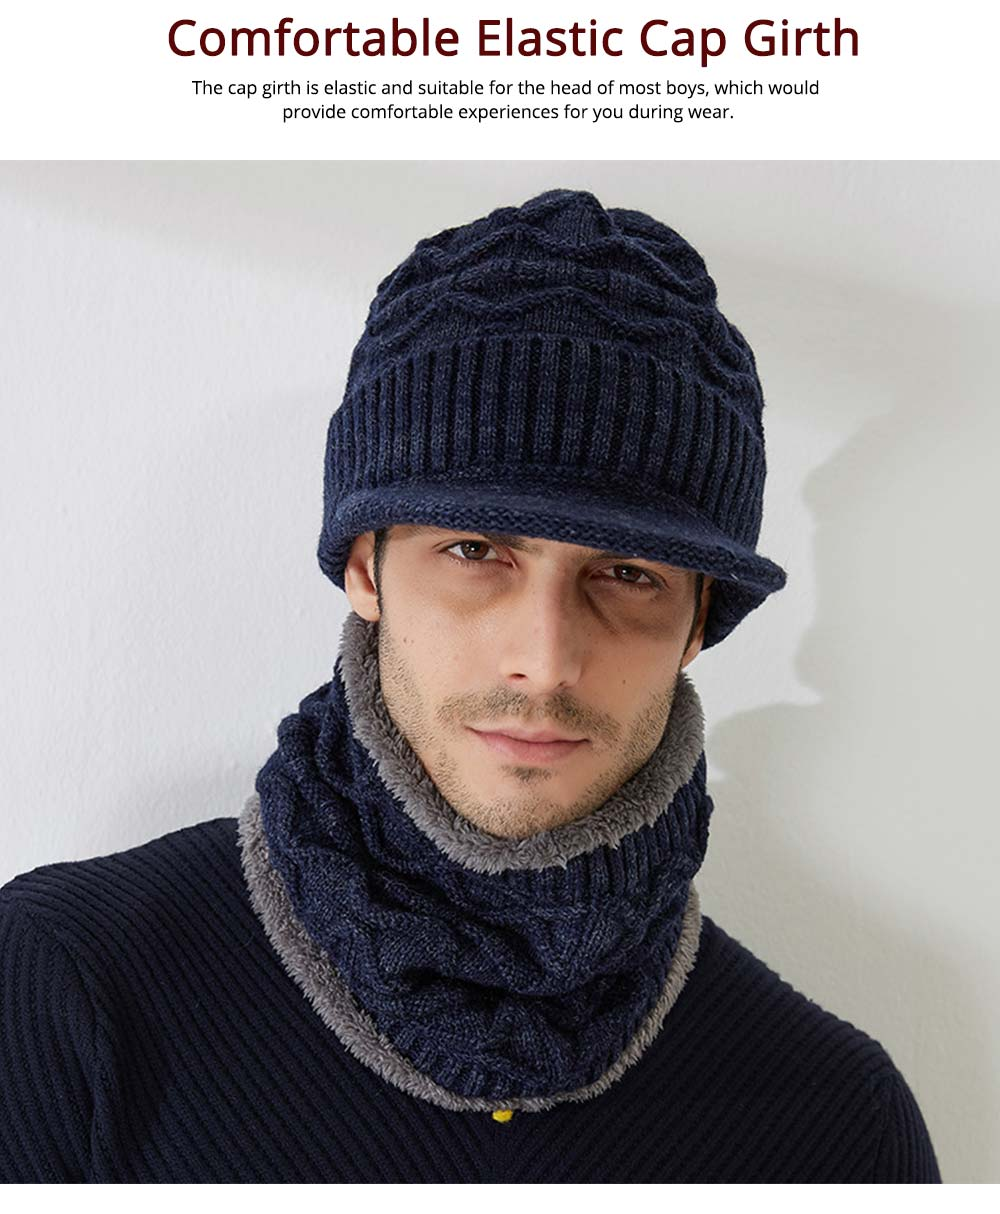 Cold Autumn Winter Men Outdoor Scarf Cap Suit, Comfortable Soft Wool Blend Knitted Face Neck Warmer Cravat 3